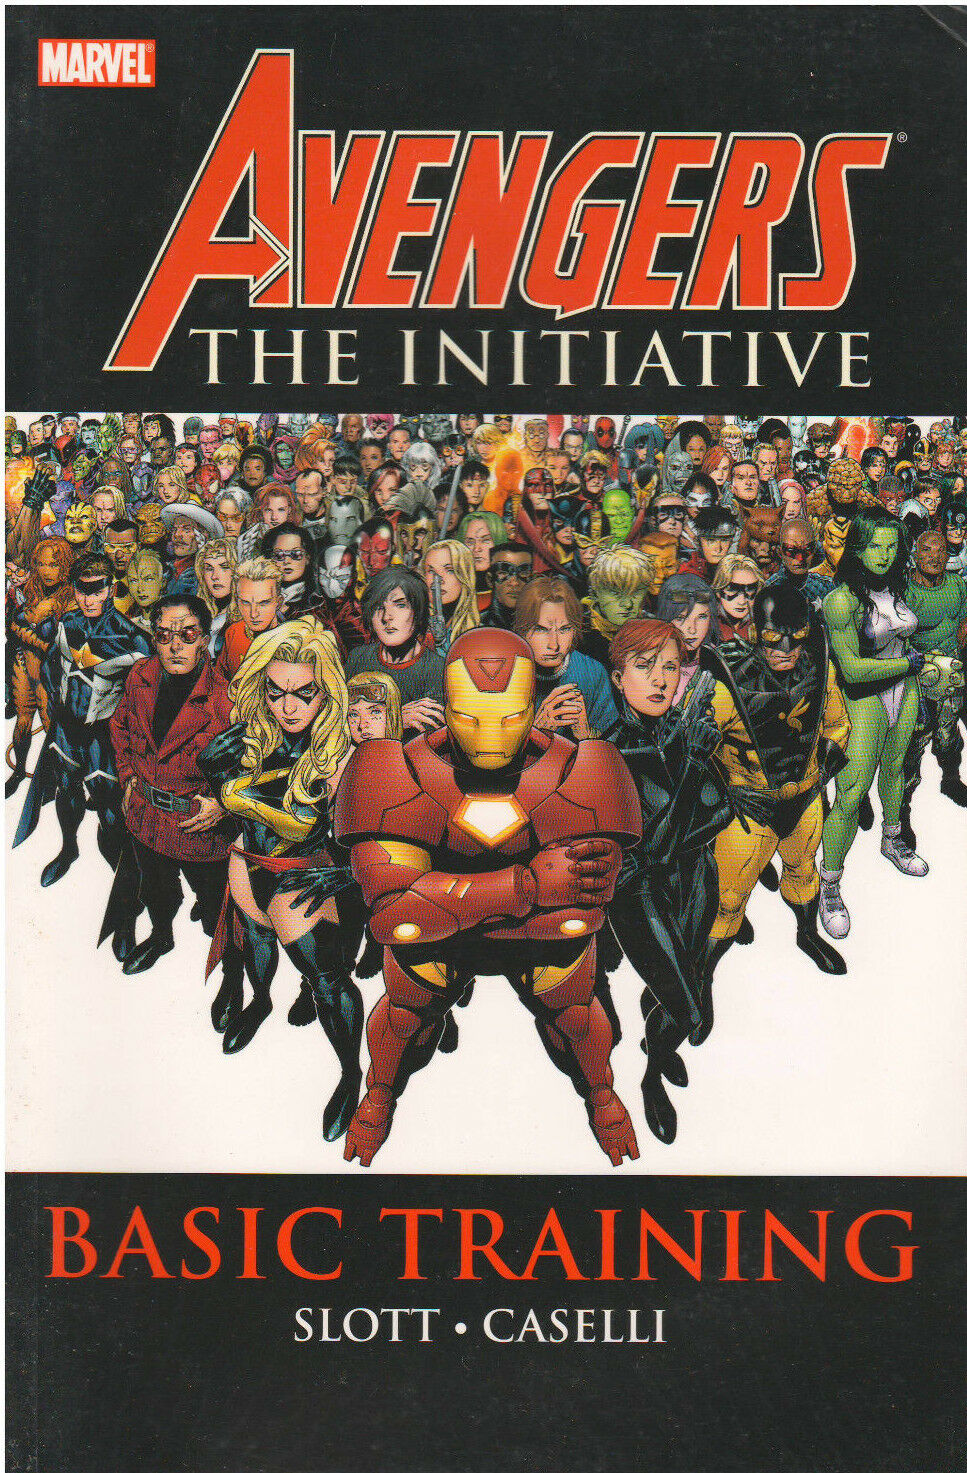 Avengers The Initiative Basic Training Vol. 1 Marvel